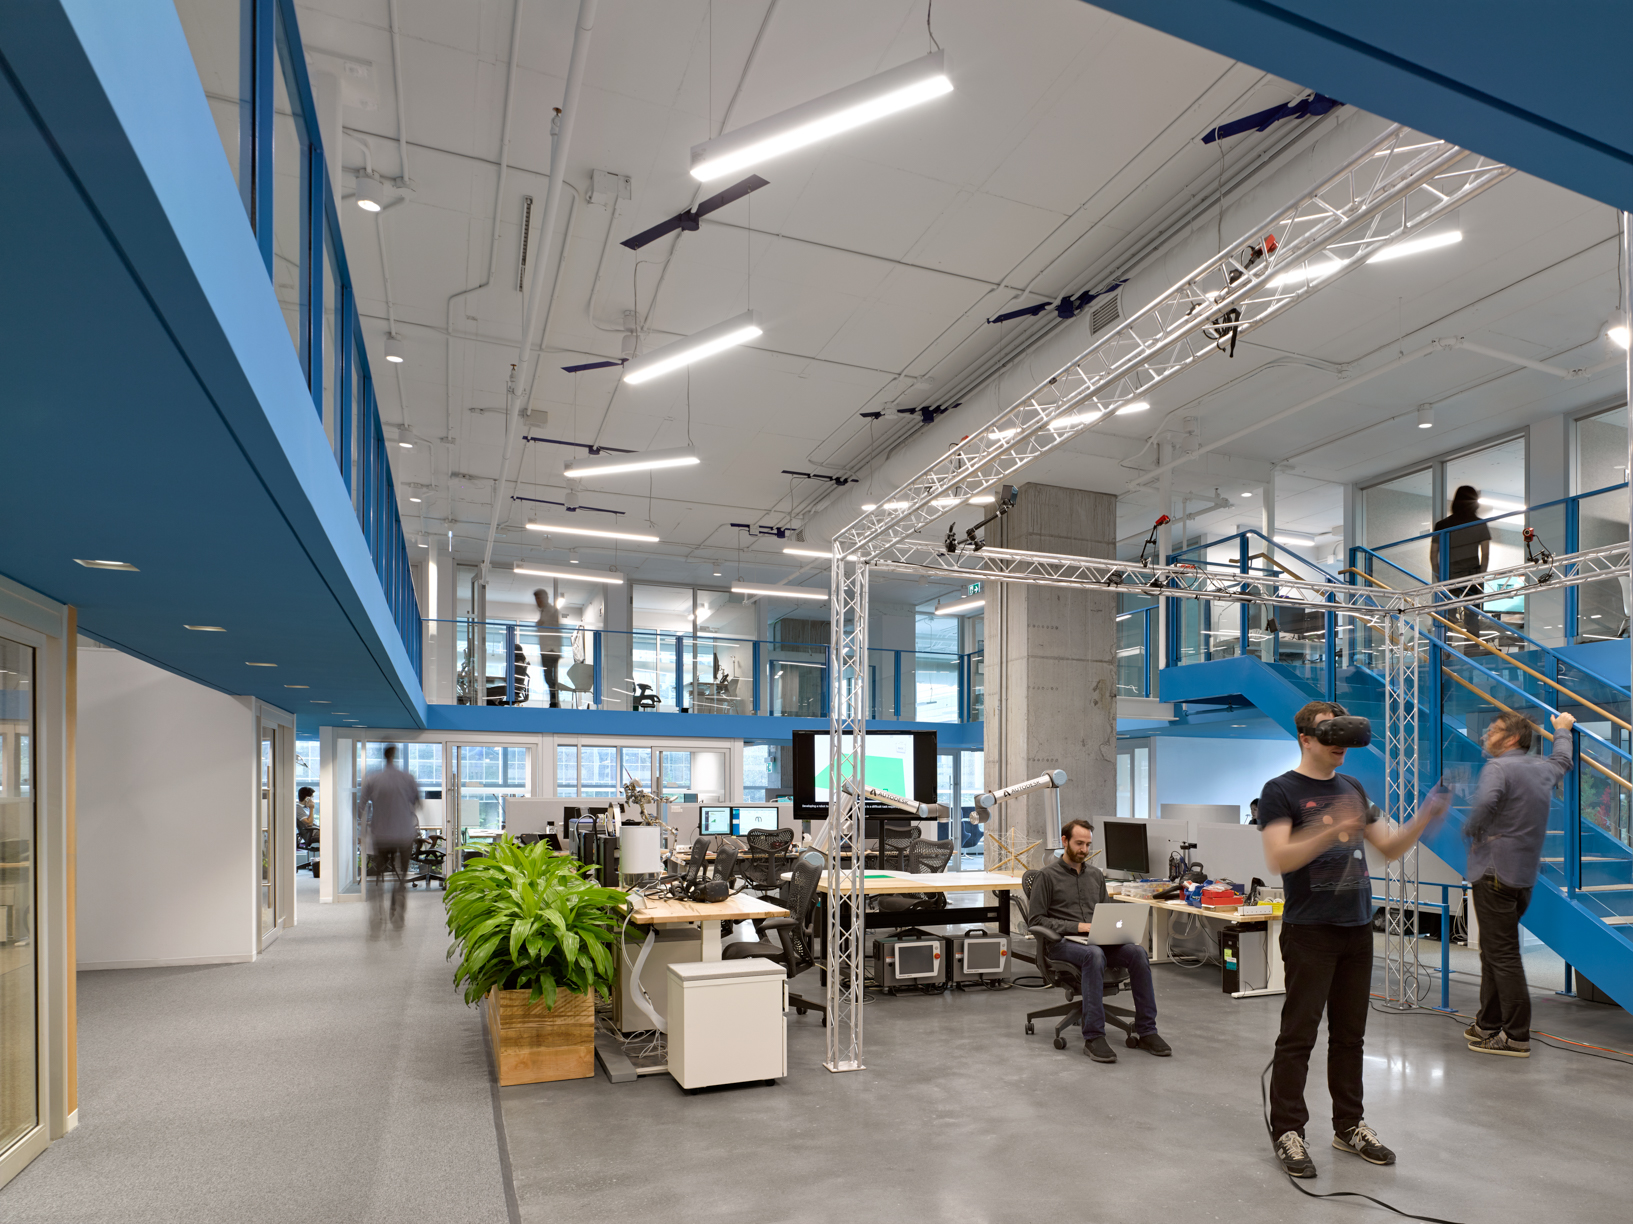 Autodesk office in Toronto designed by The Living